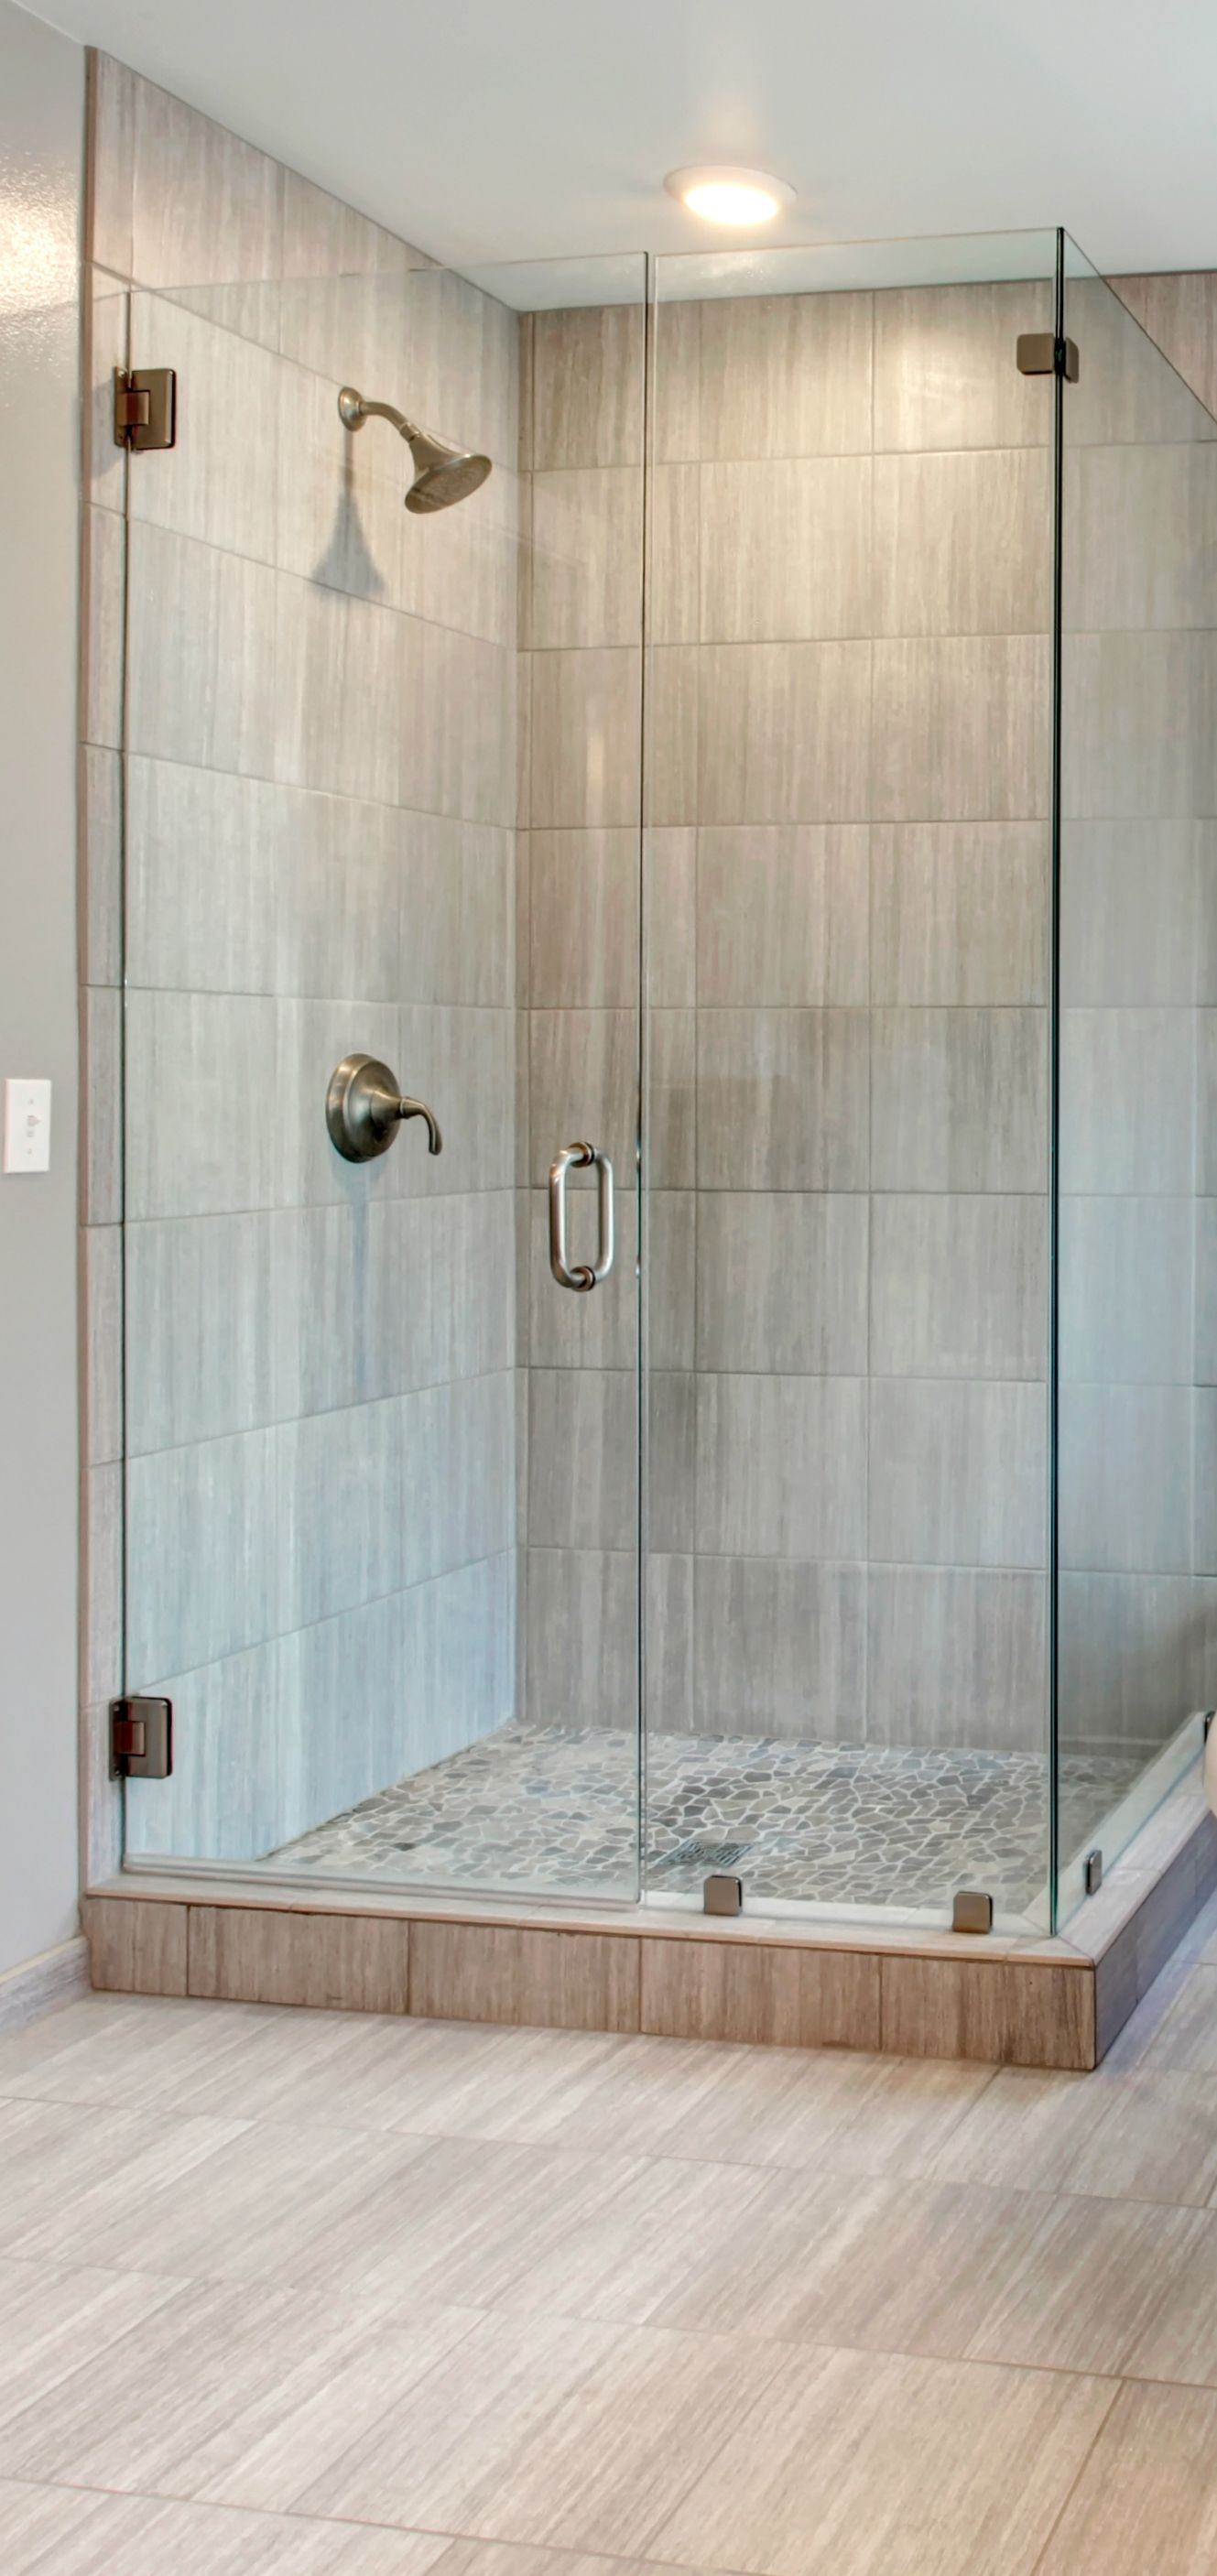 Exceptionnel Showers Corner Walk In Shower Ideas For Simple Small Bathroom With Natural  Stone Shower Pans Decor Shower Stalls For Small Bathrooms Ideas With Corner  Style ...